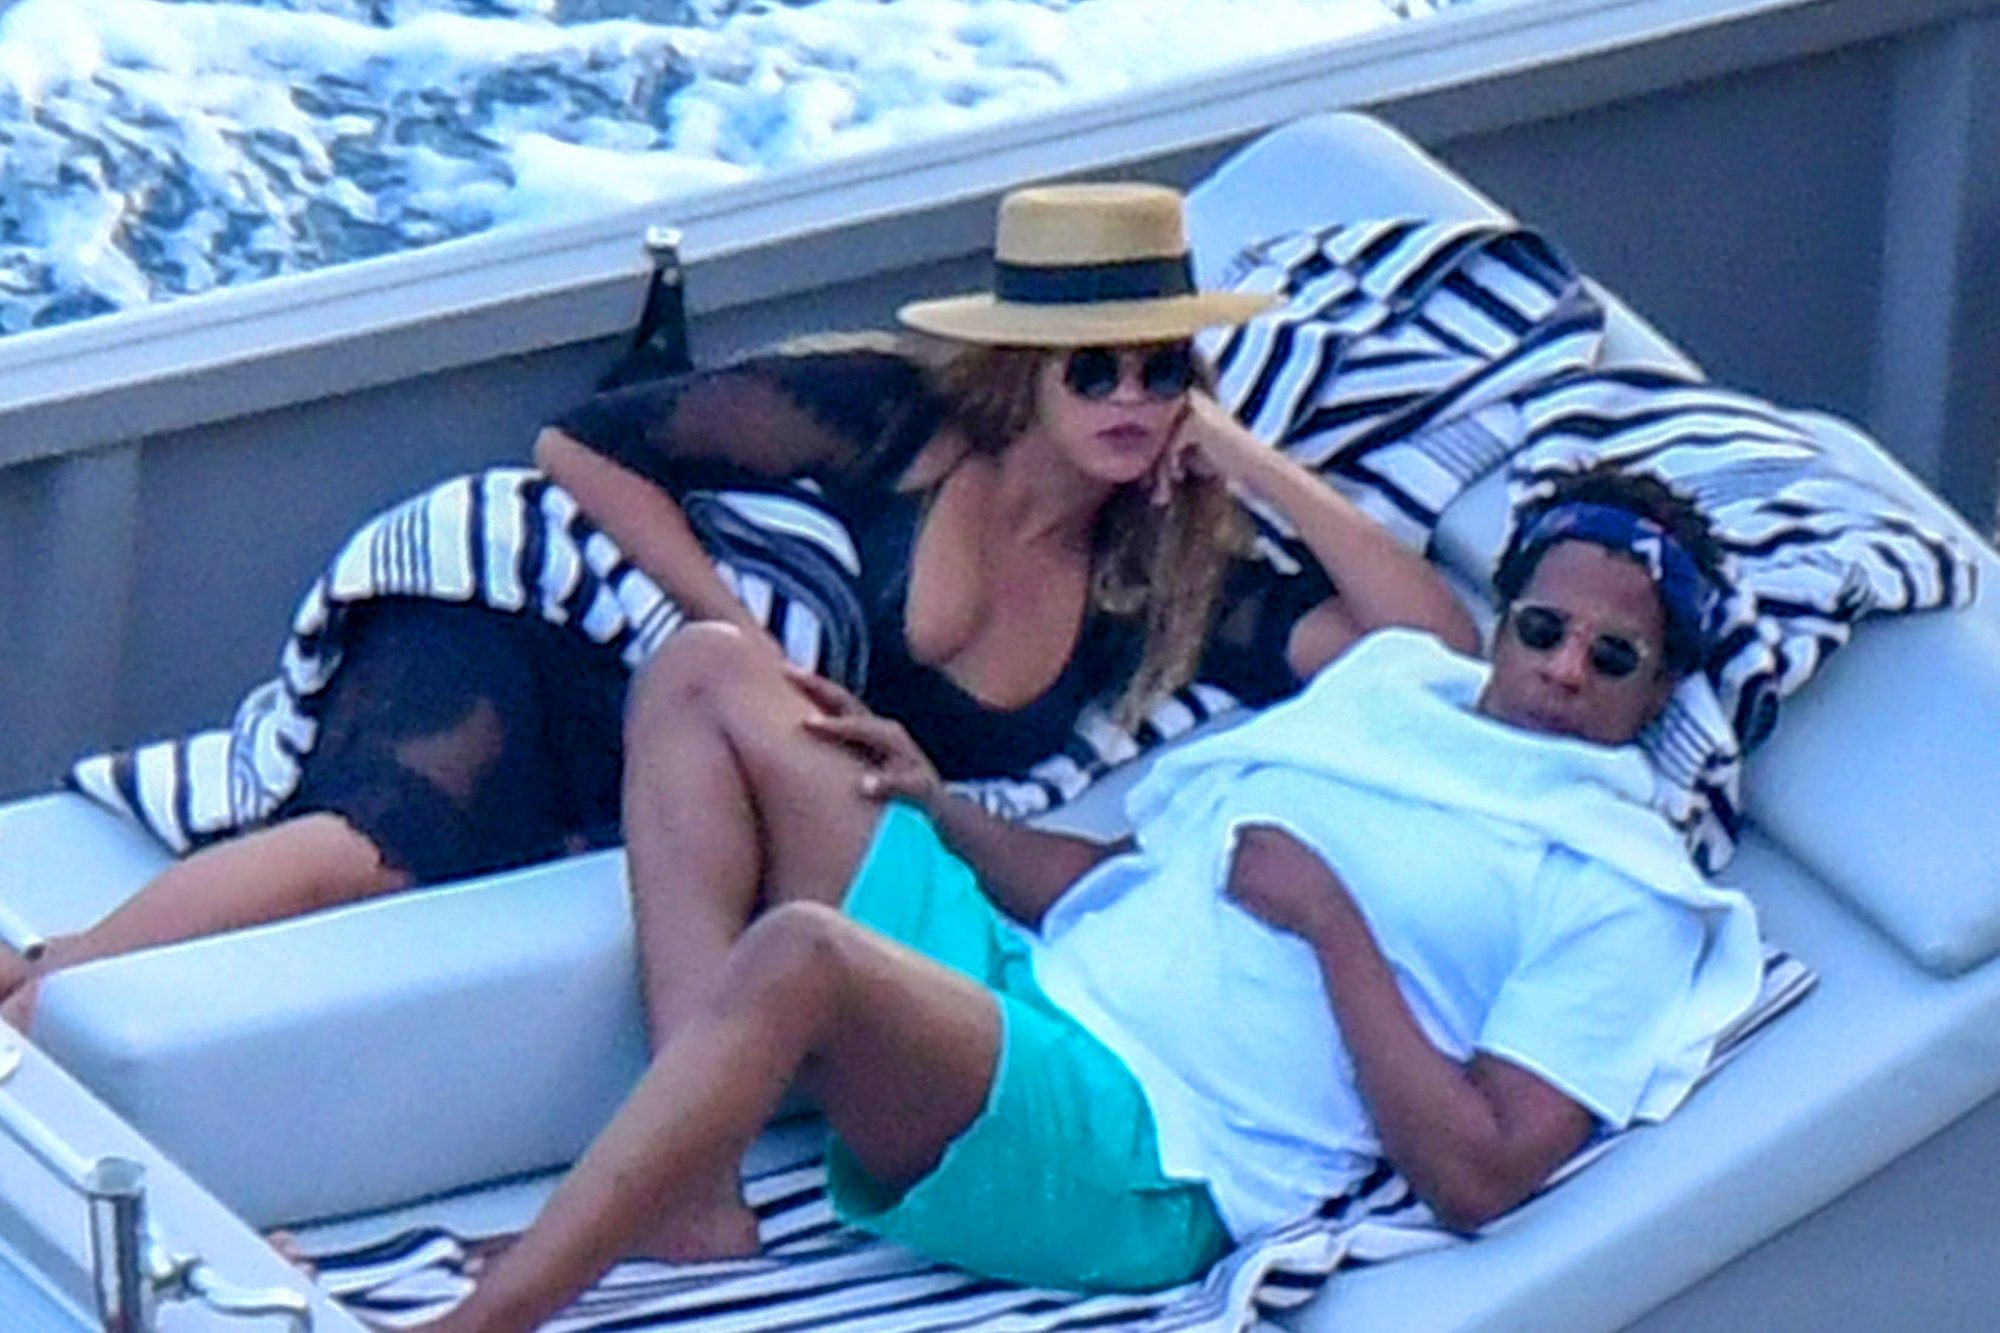 Beyonce and Jay-Z relax onboard a yacht on the Amalfi Coast